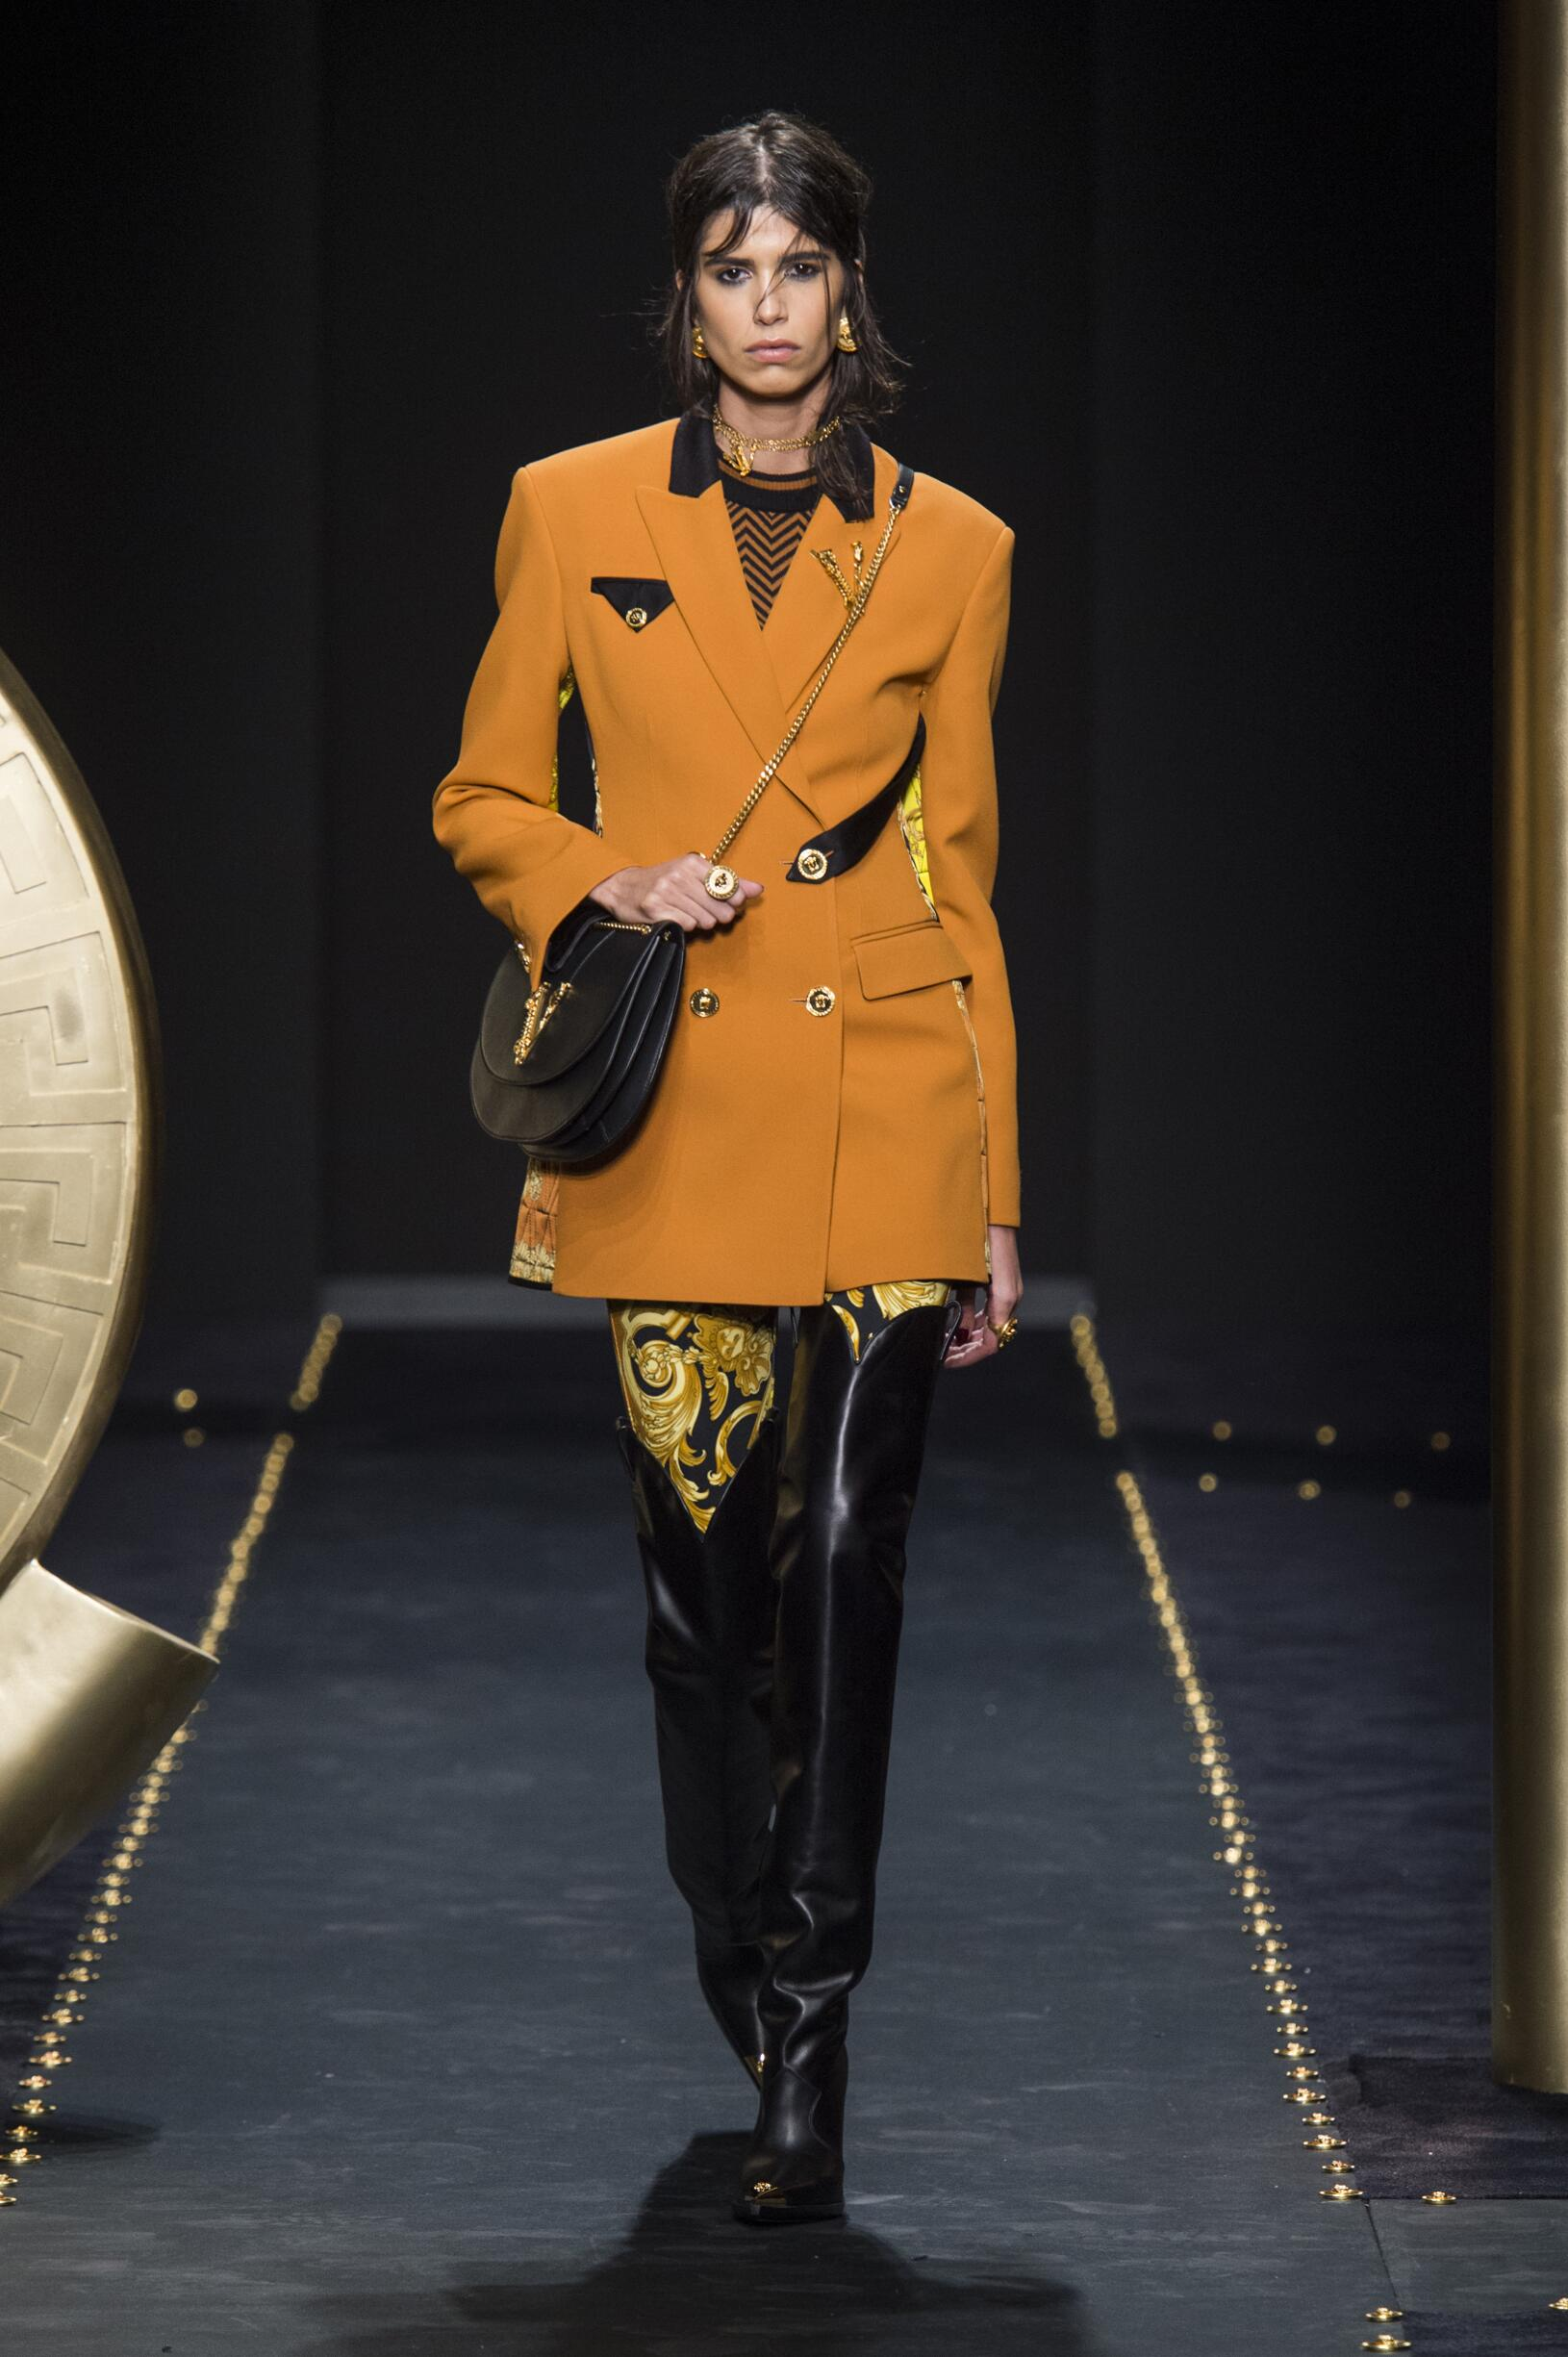 FW 2019-20 Versace Fashion Show